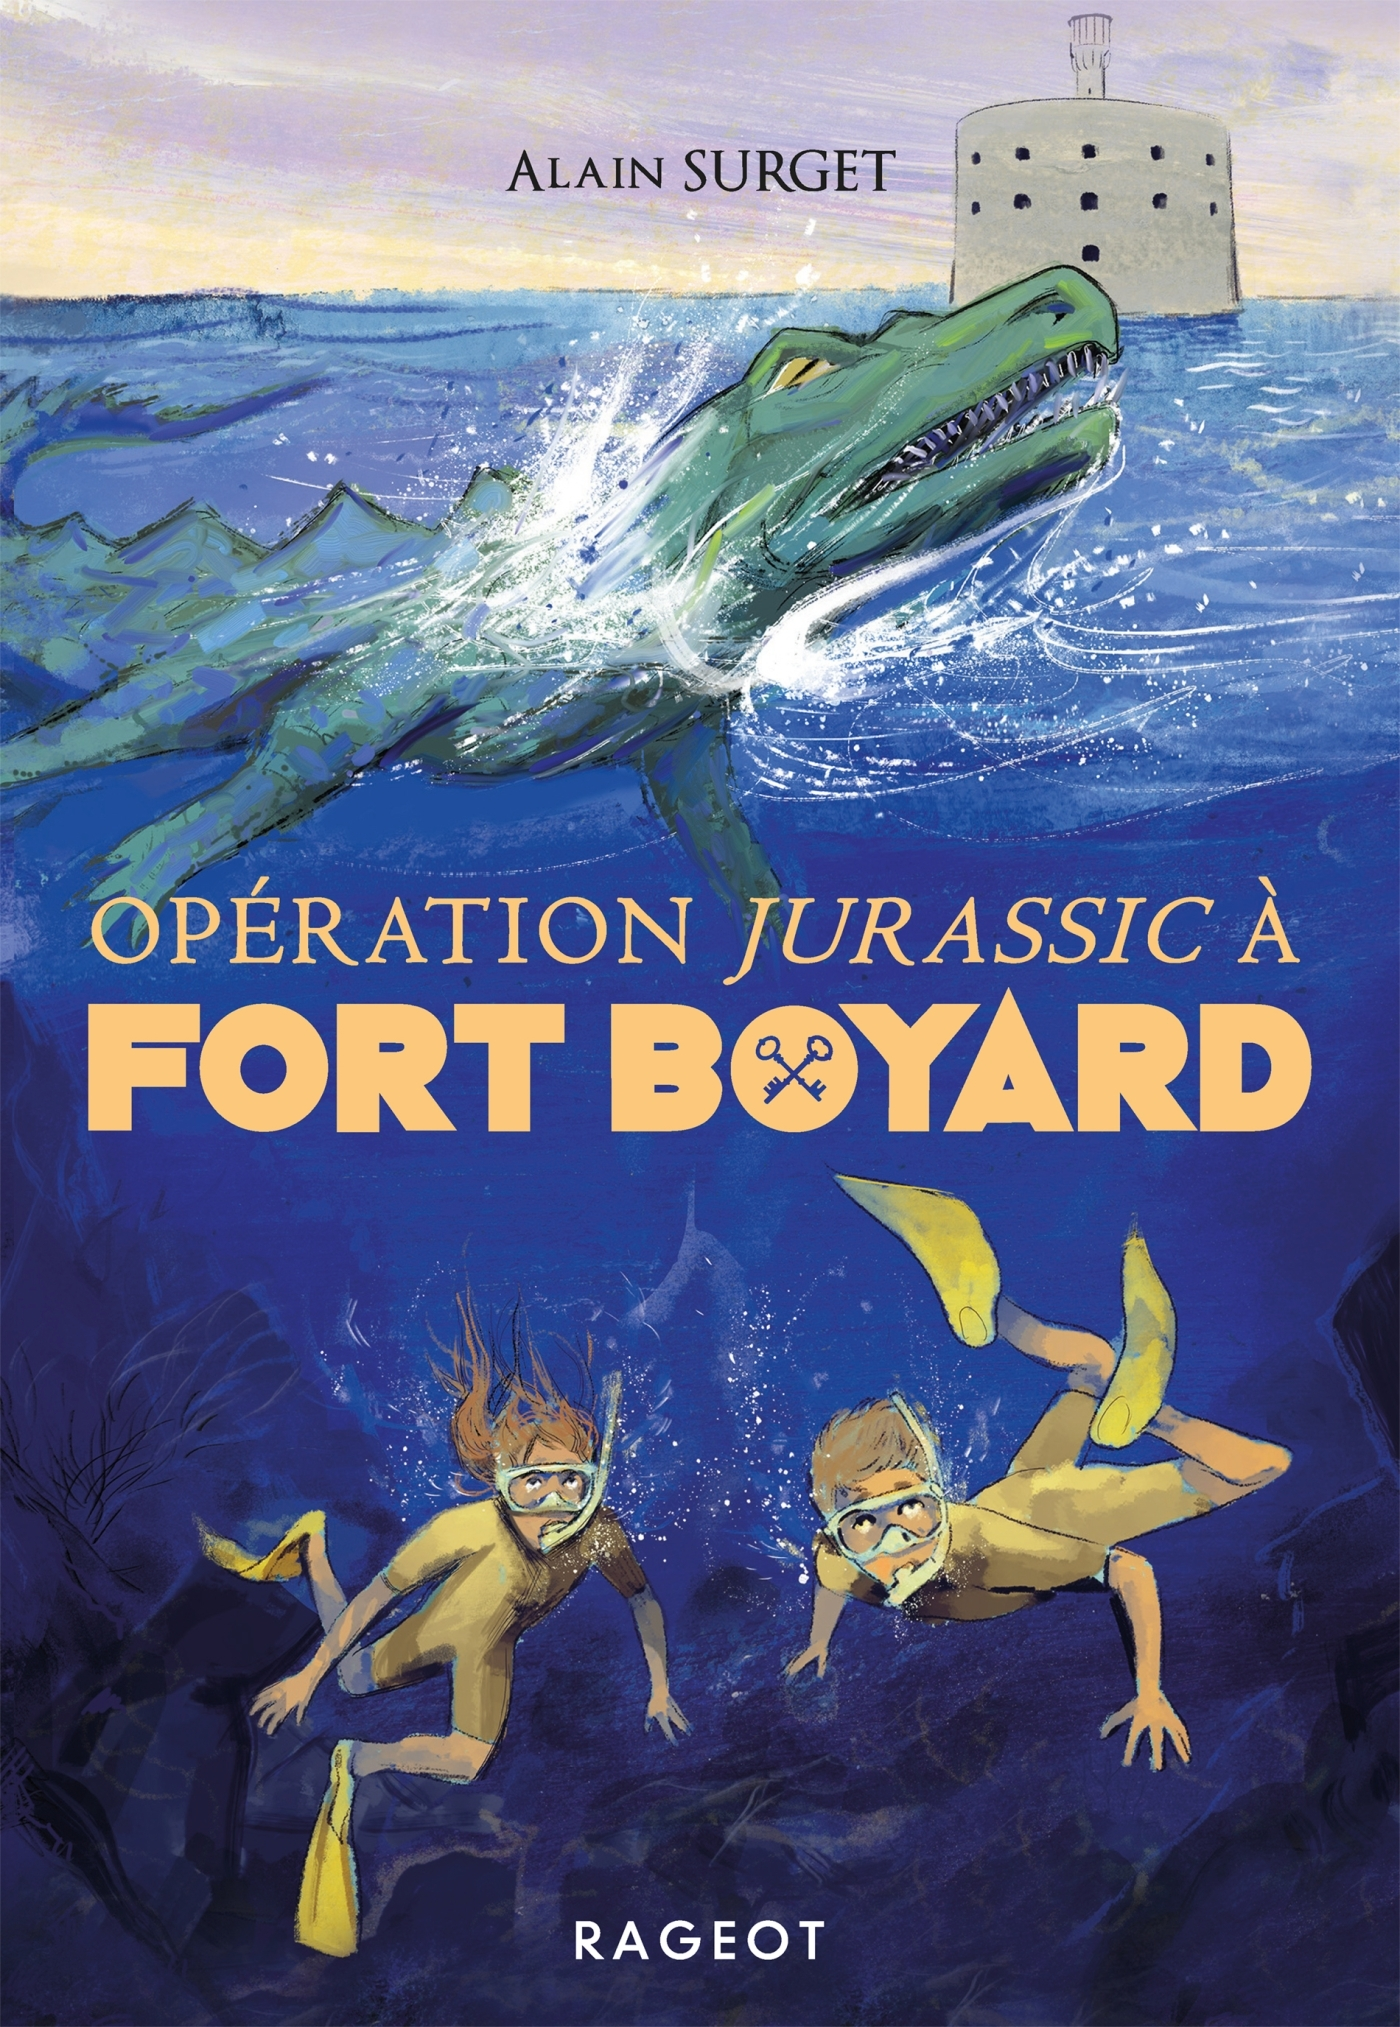 3 - OPERATION JURASSIC A FORT BOYARD